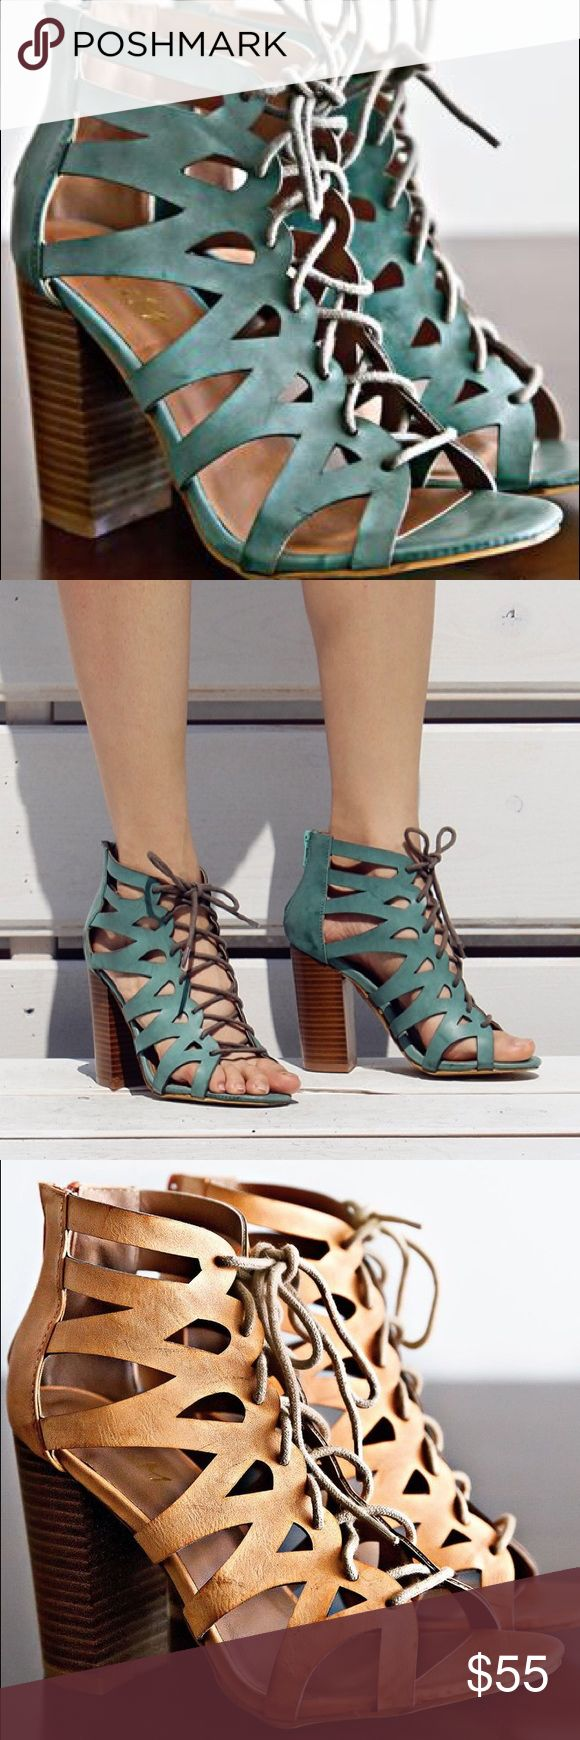 Ladies high top lace up chunky heel sandal.Torques Summer is here! Walk in style with this stylish sandal, super comfy, hot color, brand new in box, man made material, 3-4 inches hells, true to size. Available in orange and and rose colors. NO TRADES shoeroom21 boutique Shoes Heels